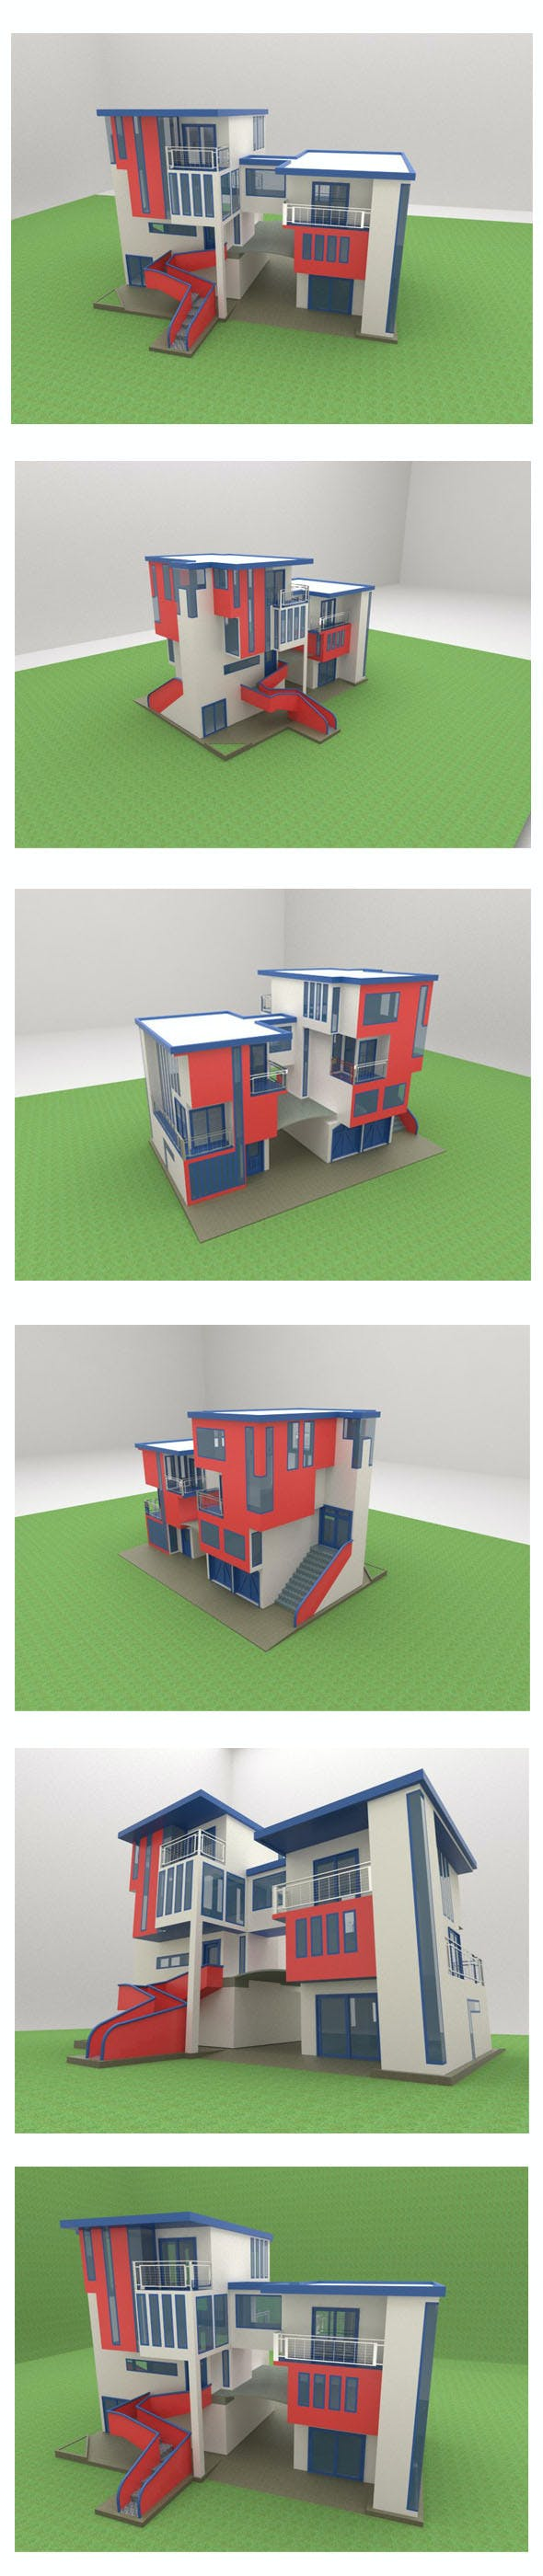 LOW POLY MANSION modern house - 3DOcean Item for Sale